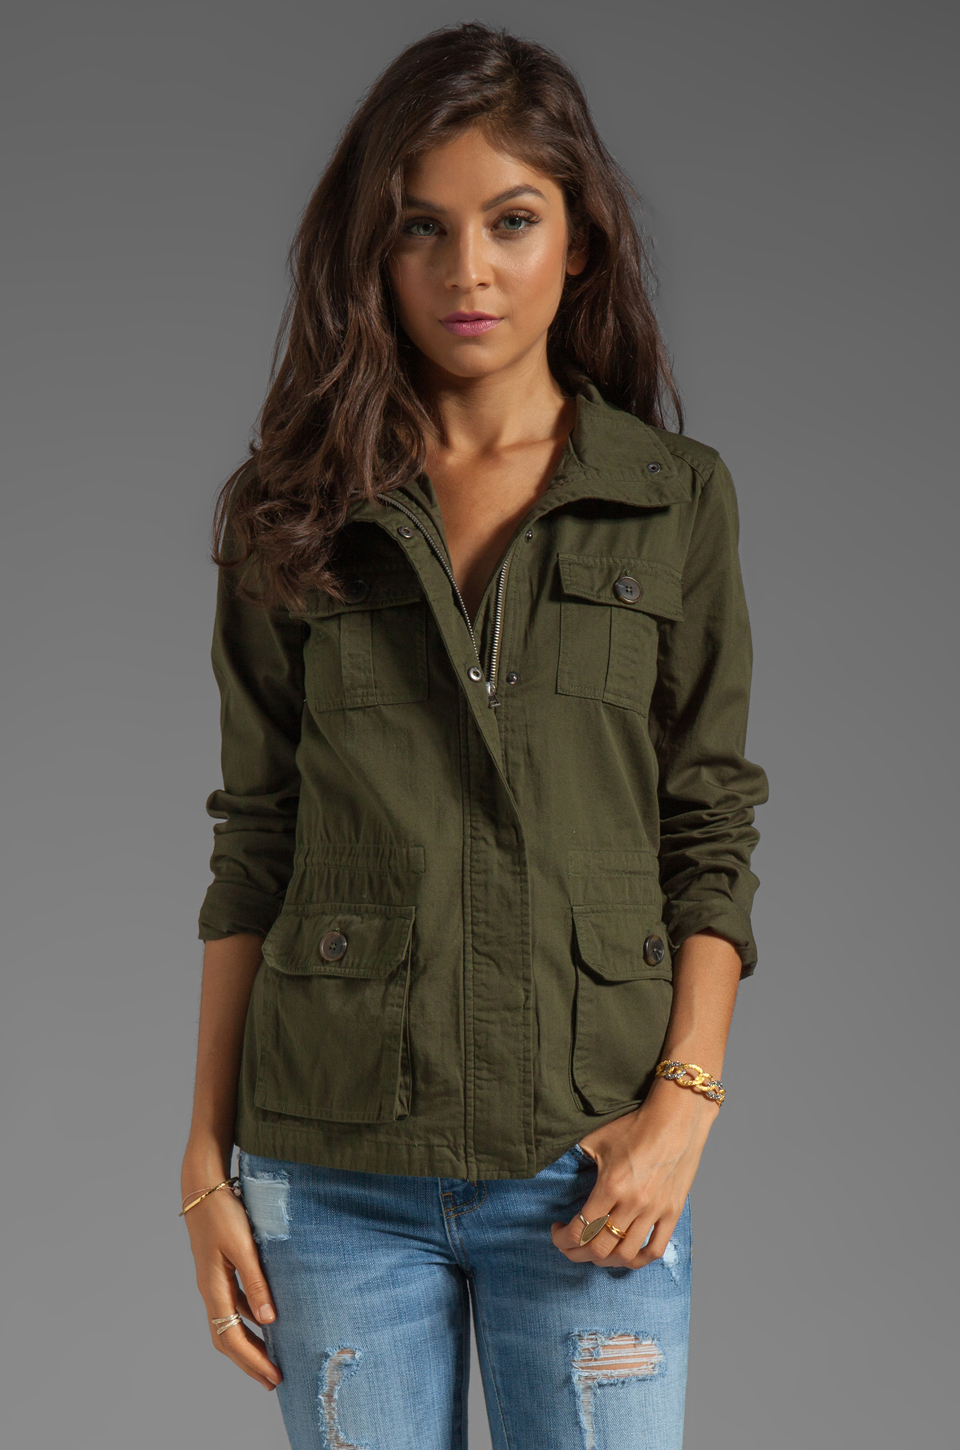 Leslie Cotton Twill Army Jacket in Army Green // BB Dakota